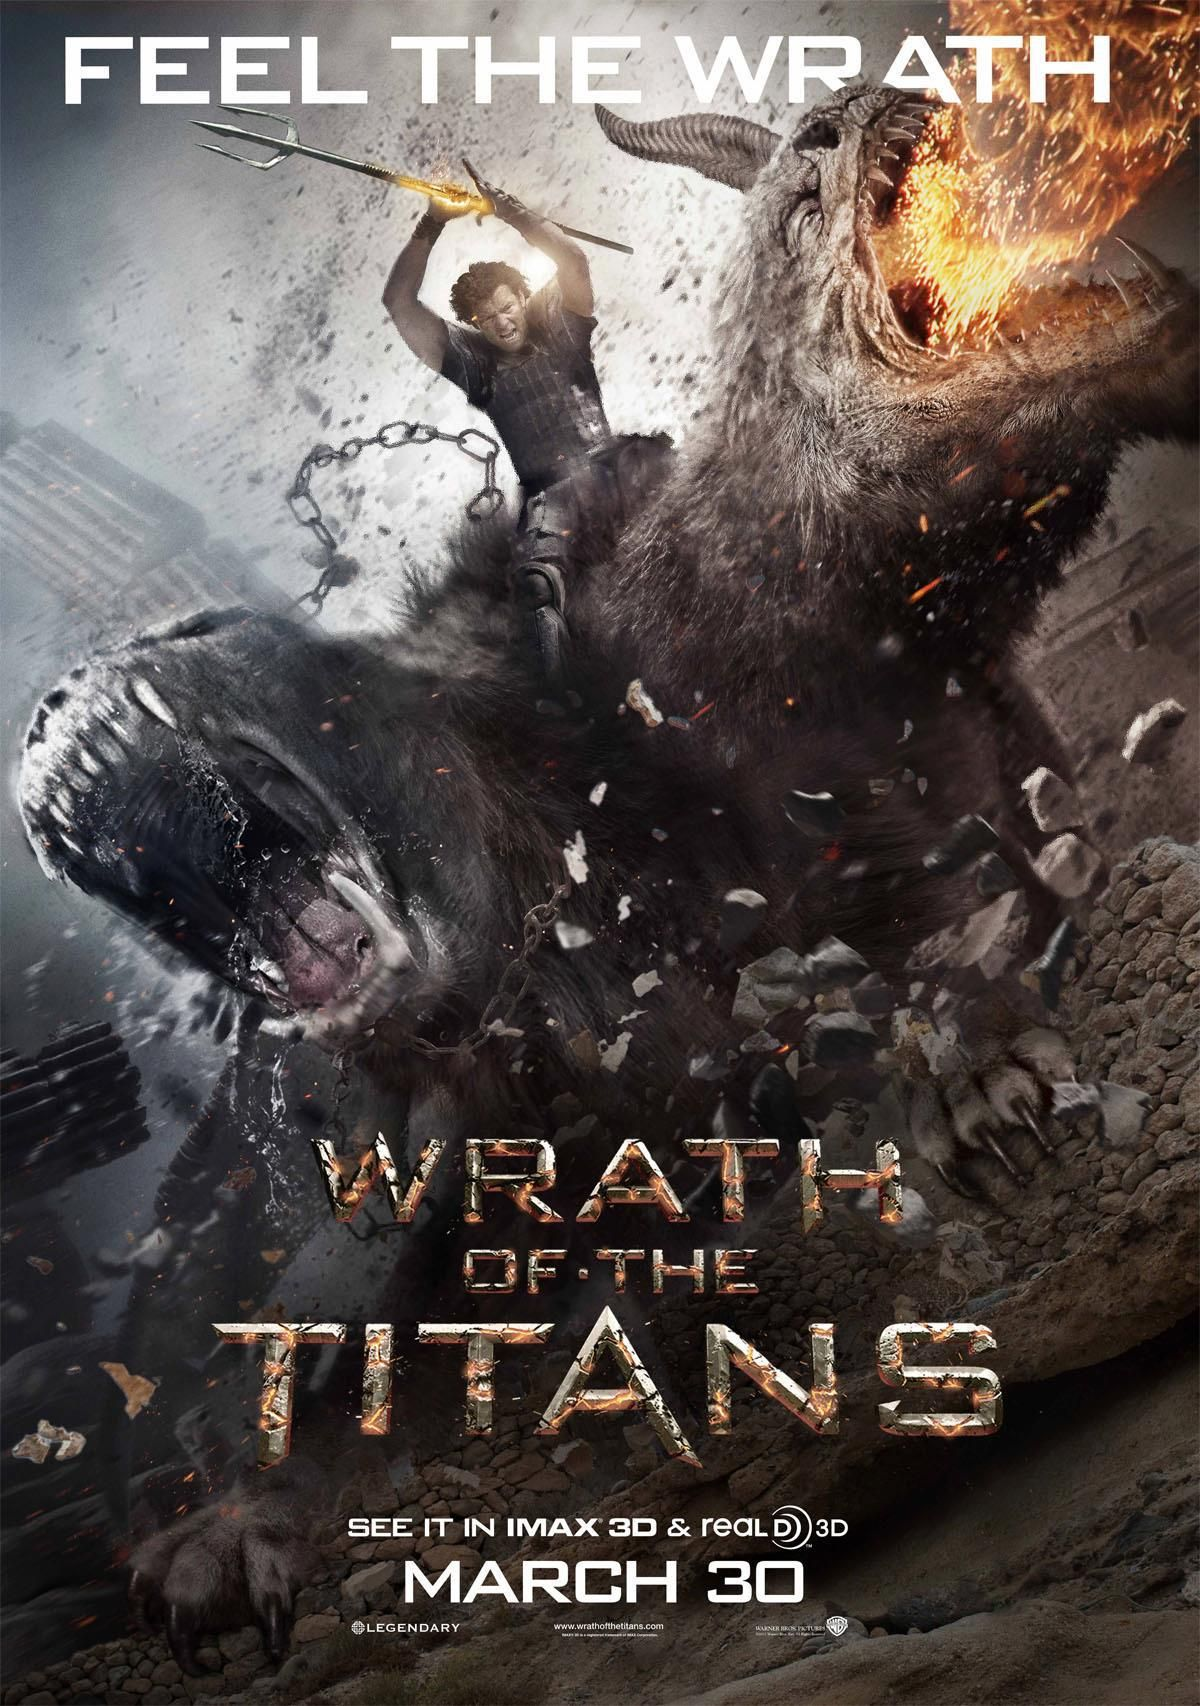 Wrath Of The Titans Movie Poster Wrath Of The Titans Movie Posters Wrath